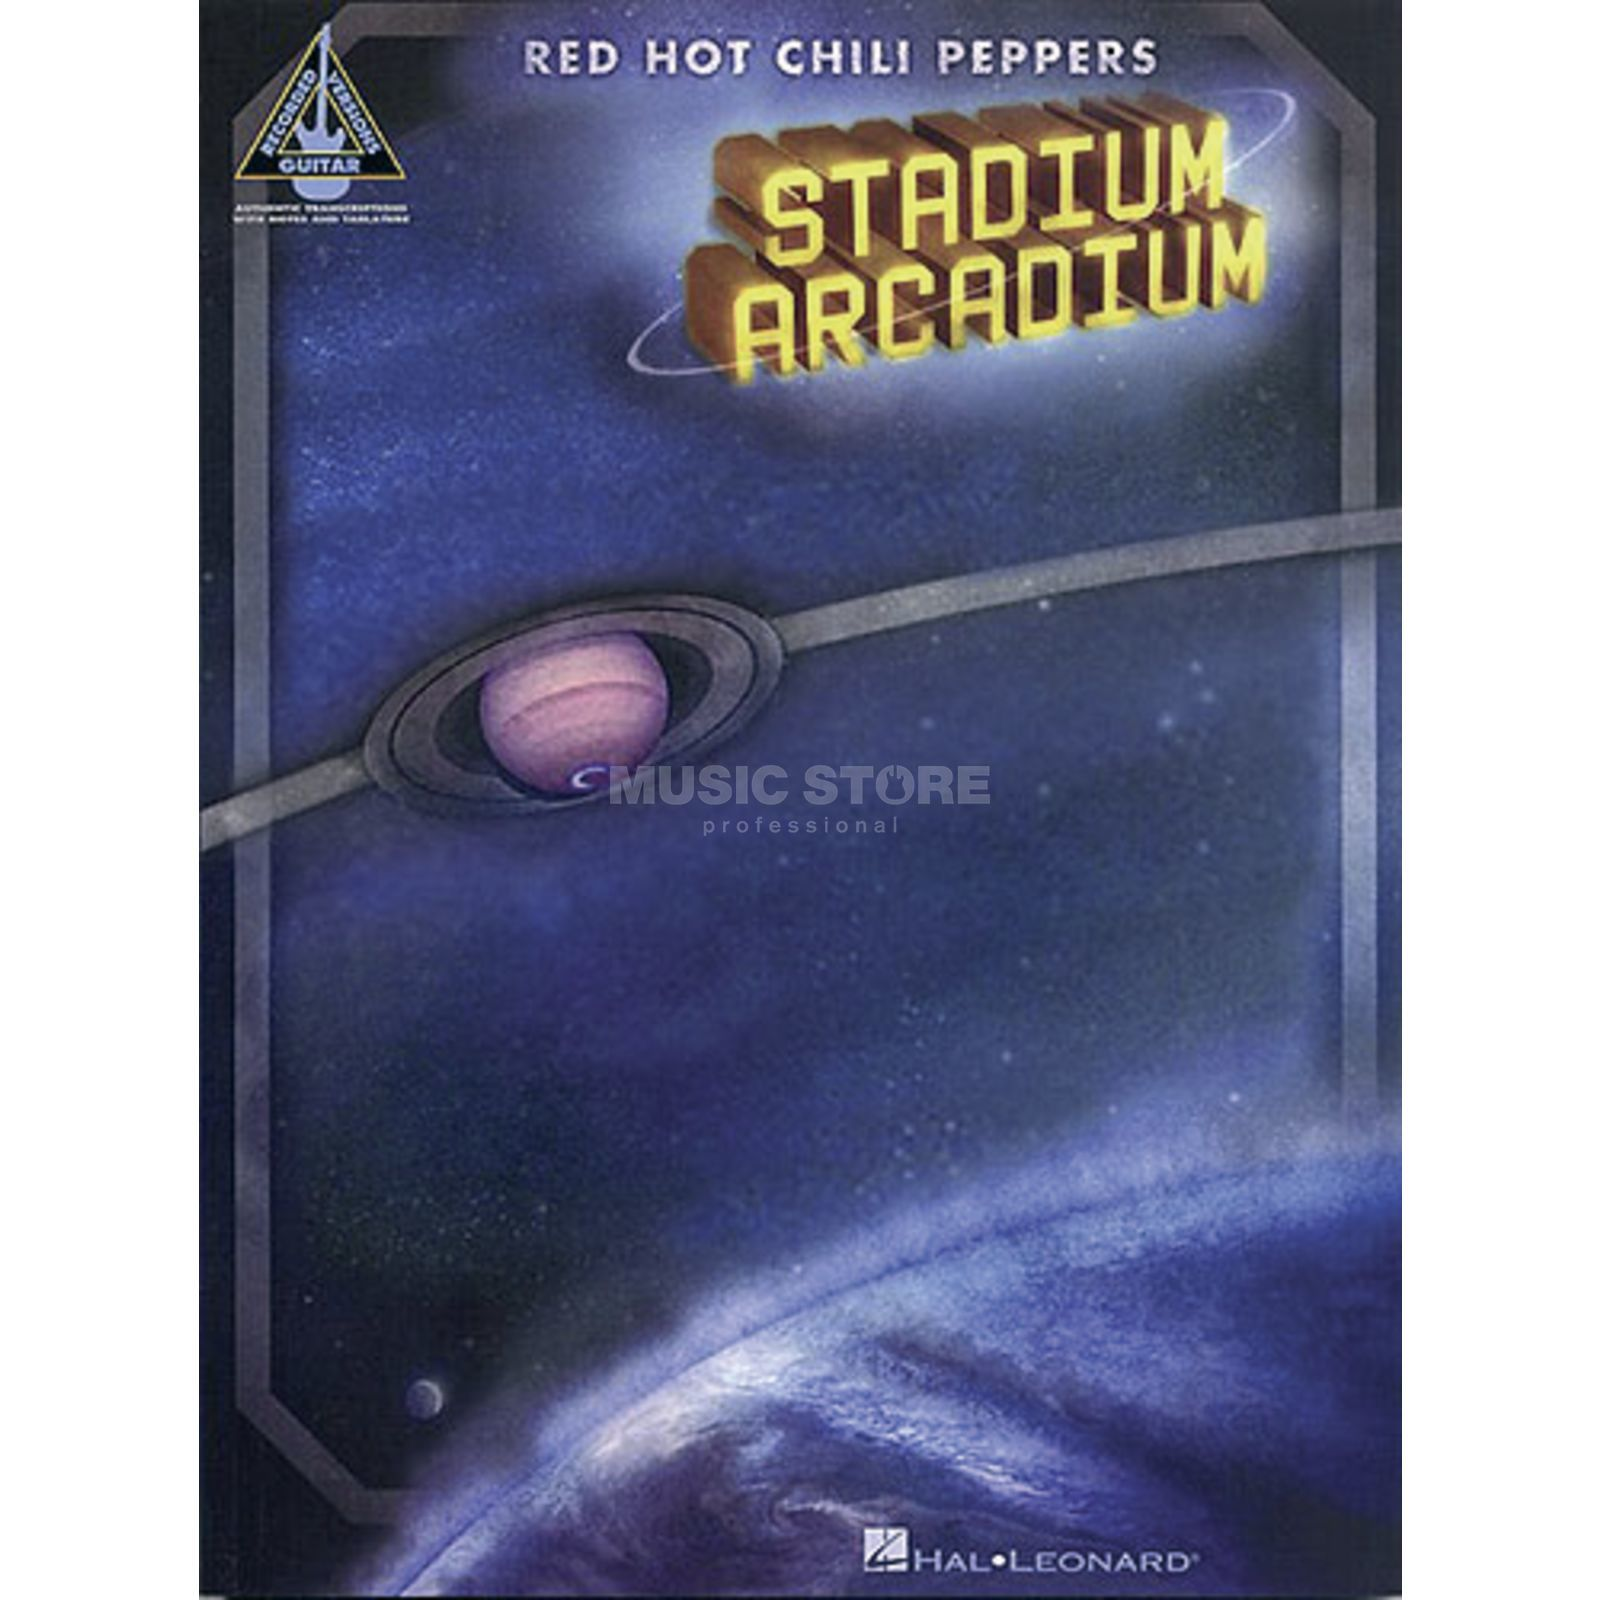 Hal Leonard Red Hot Chili Peppers: Stadium Arcadium Produktbild